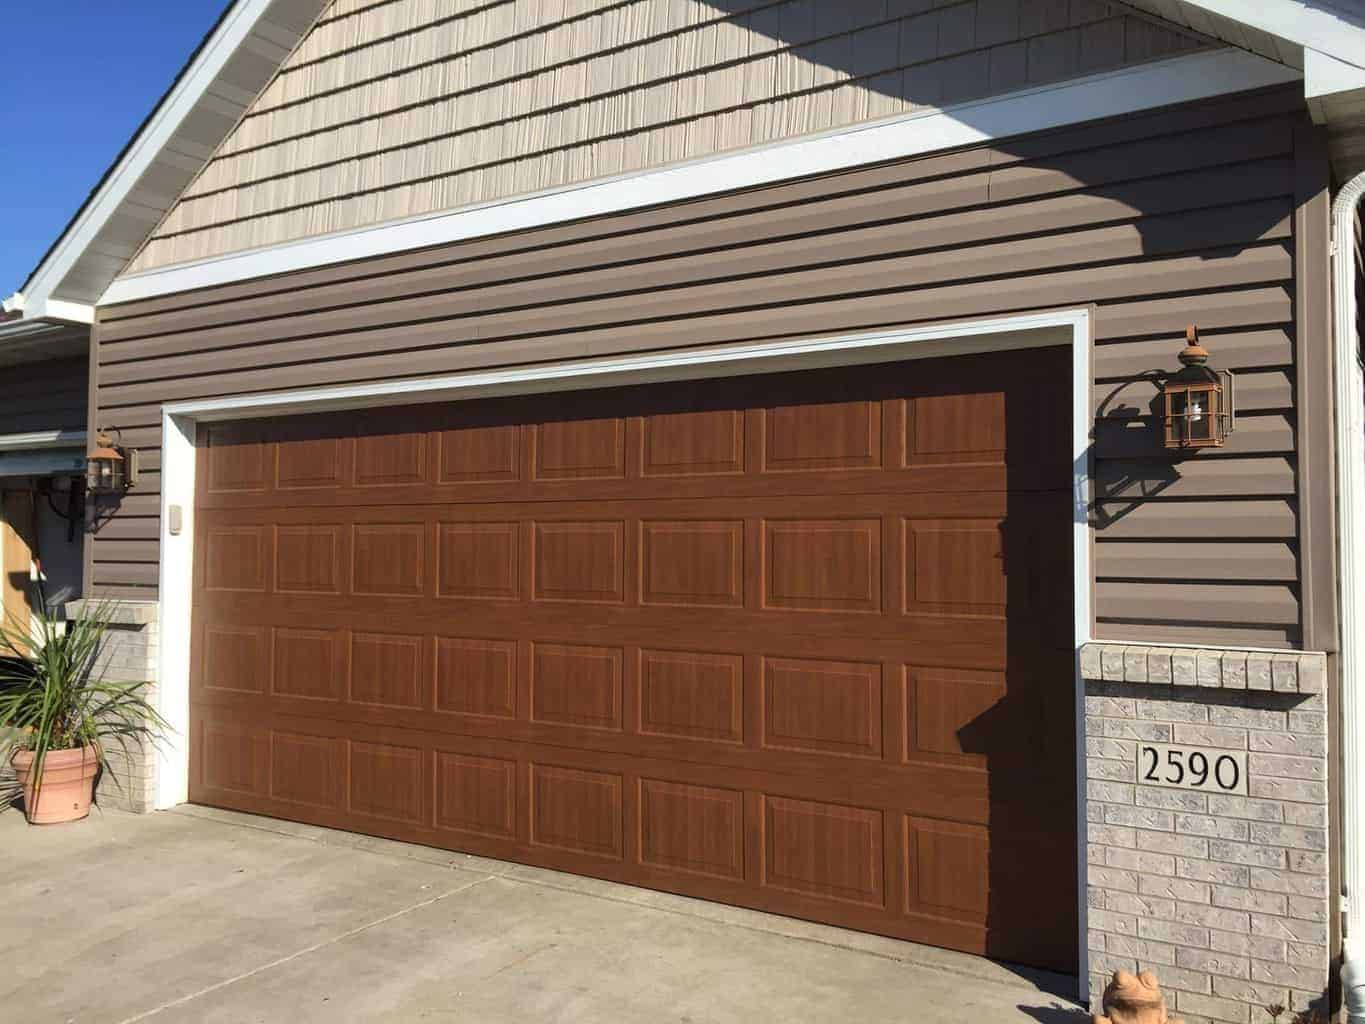 Thermacore 194 Series Steel Garage Door   Hastings, MN Install   Overhead  Door Company